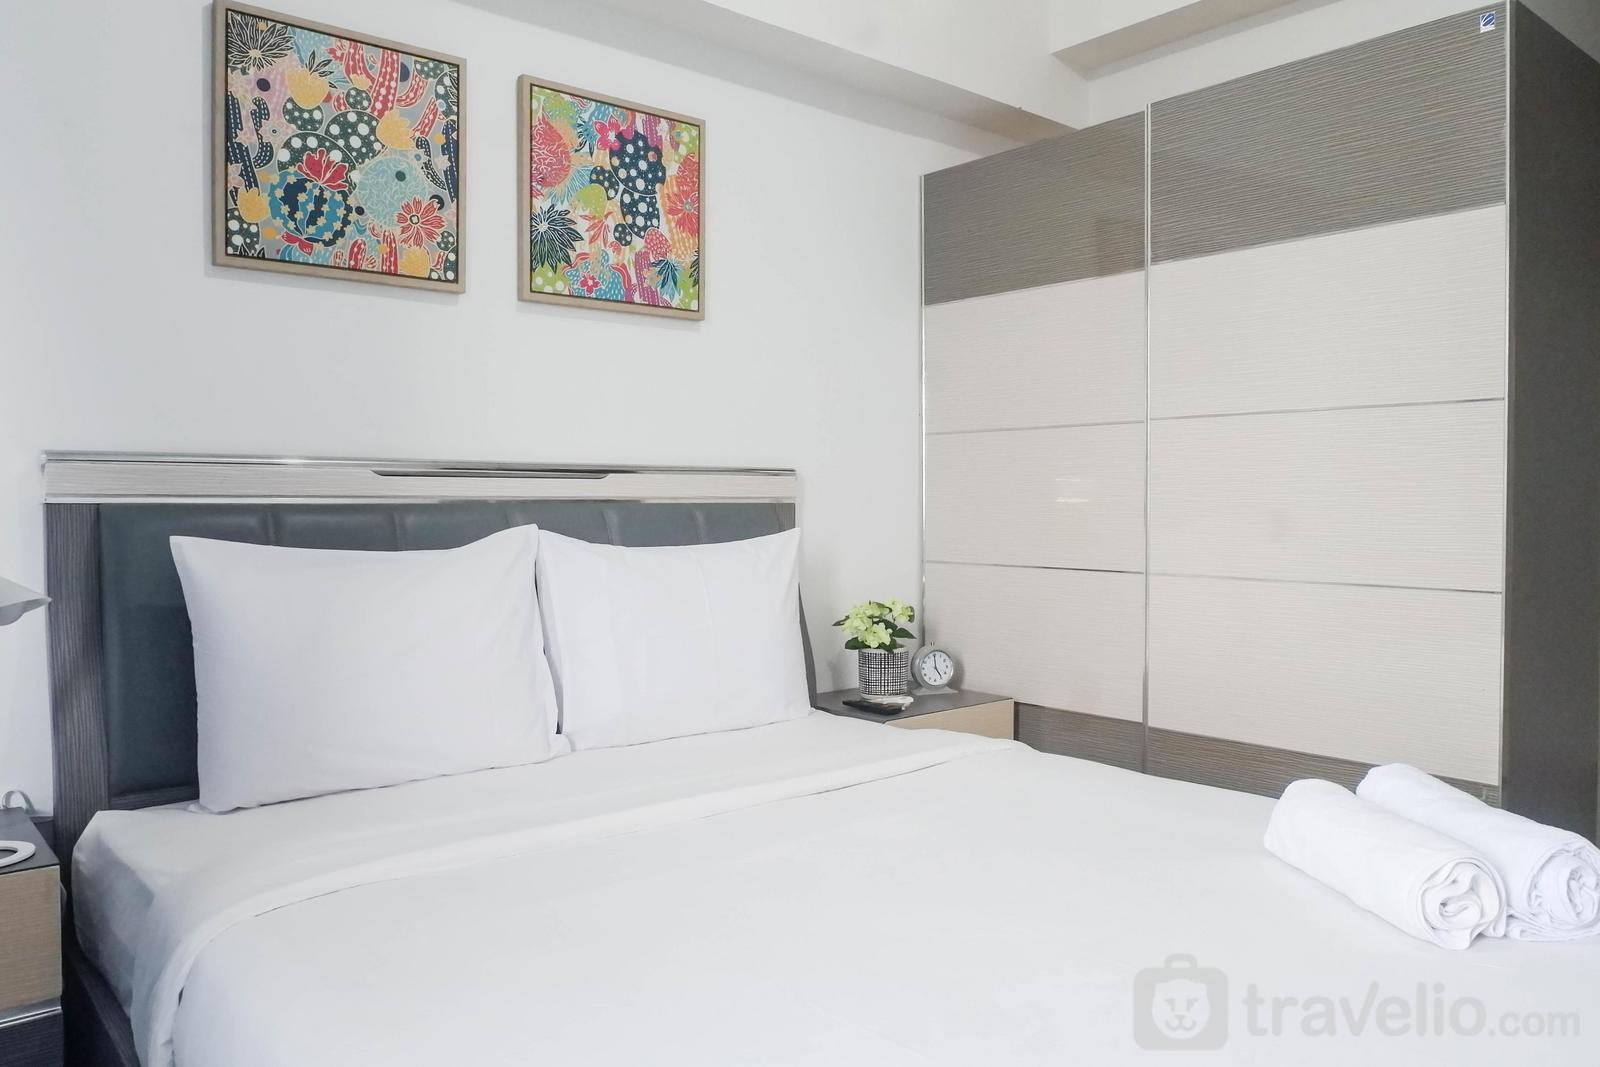 Apartemen Supermall Mansion - Best Value & Clean Studio Room Apartment Connected to Mall at Tanglin Supermall Mansion By Travelio